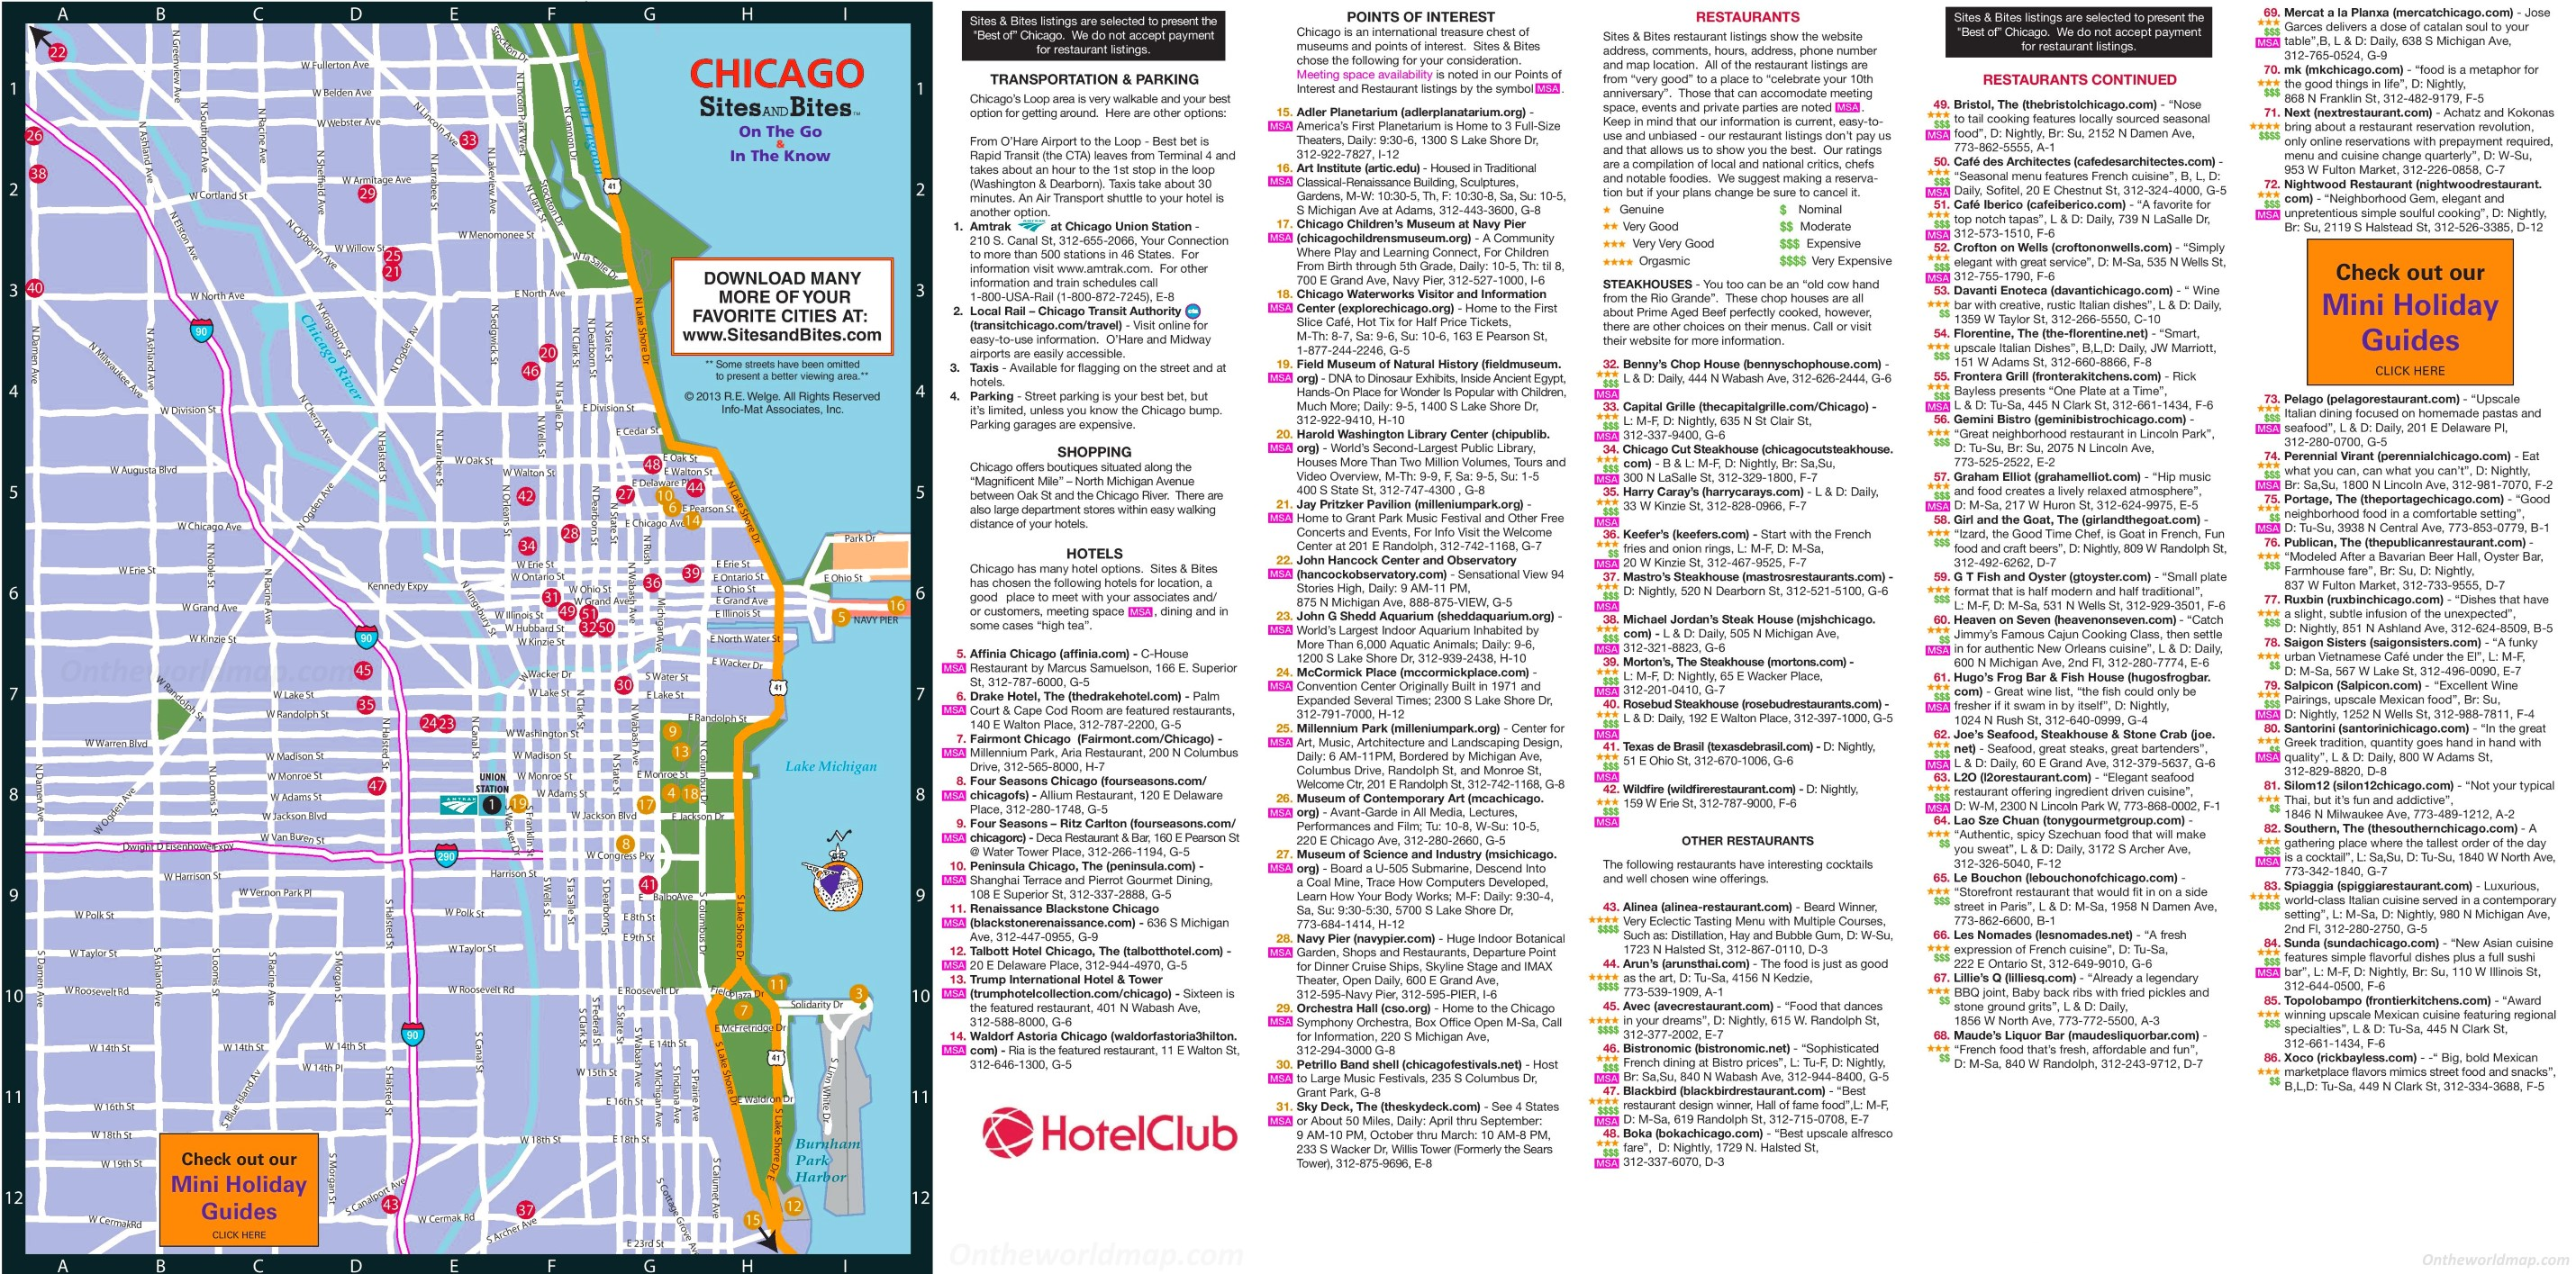 Chicago hotels, restaurants and sightseeing map on